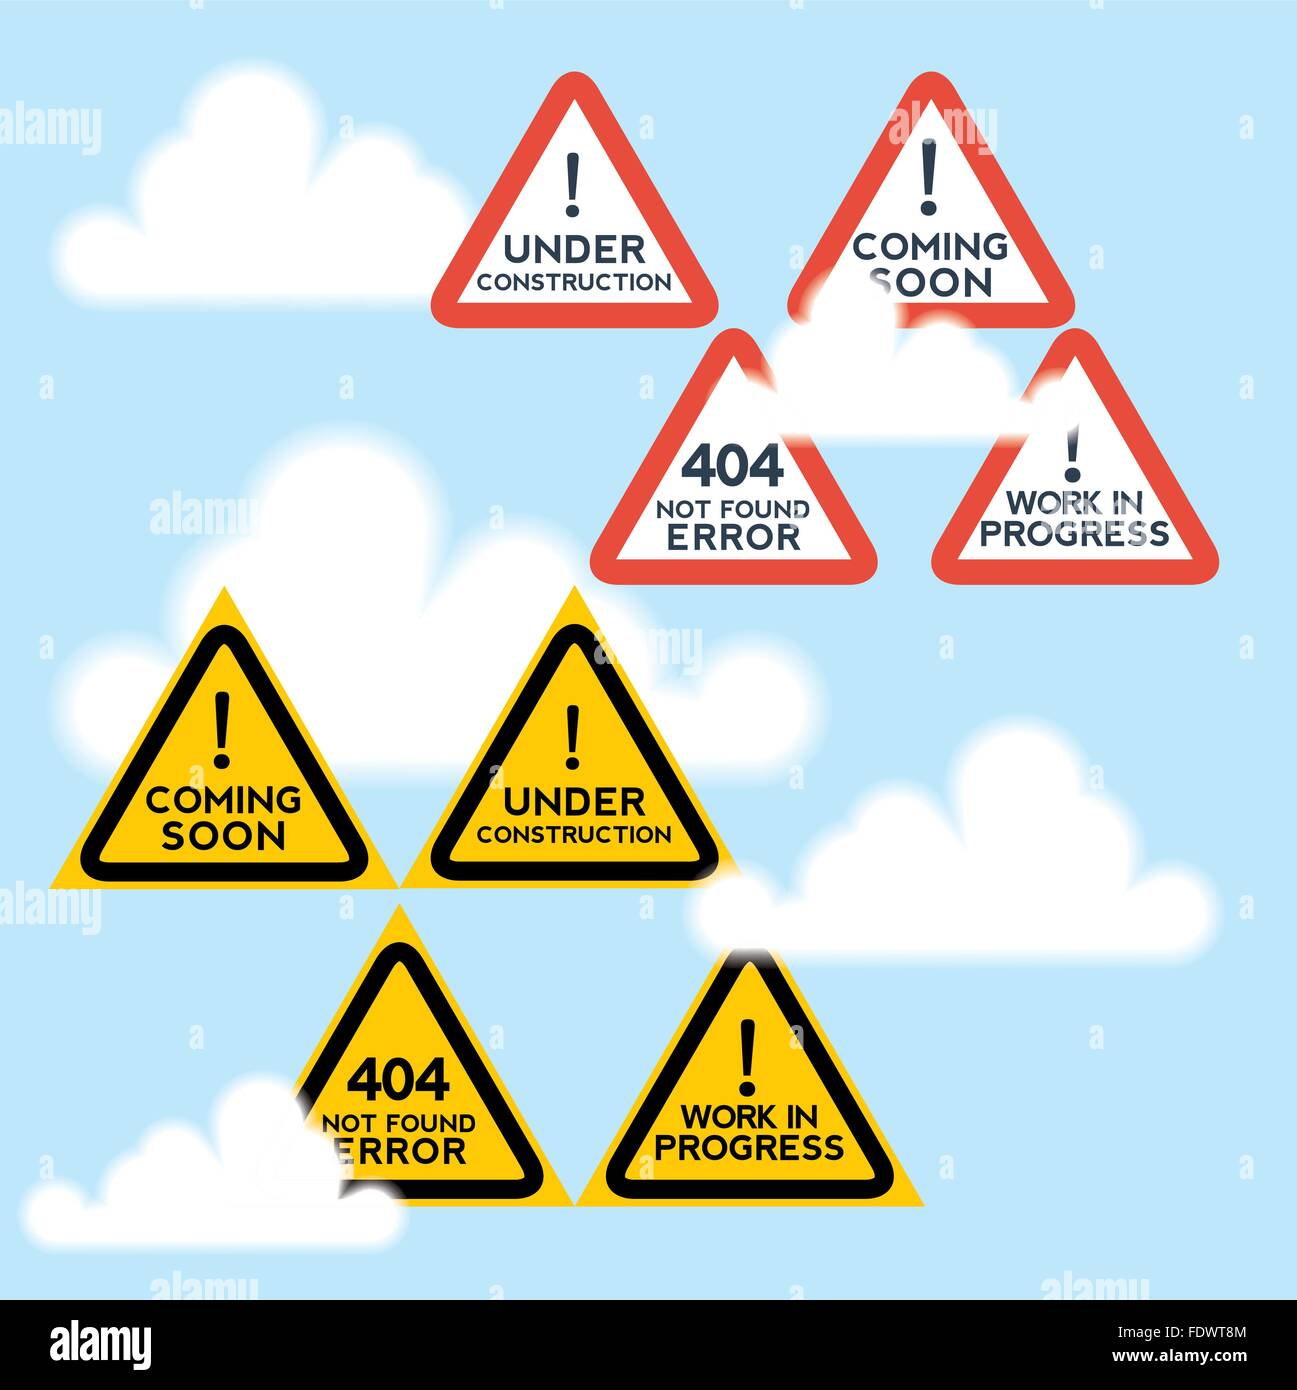 Signs set for website under construction, anticipation motifs. - Stock Vector